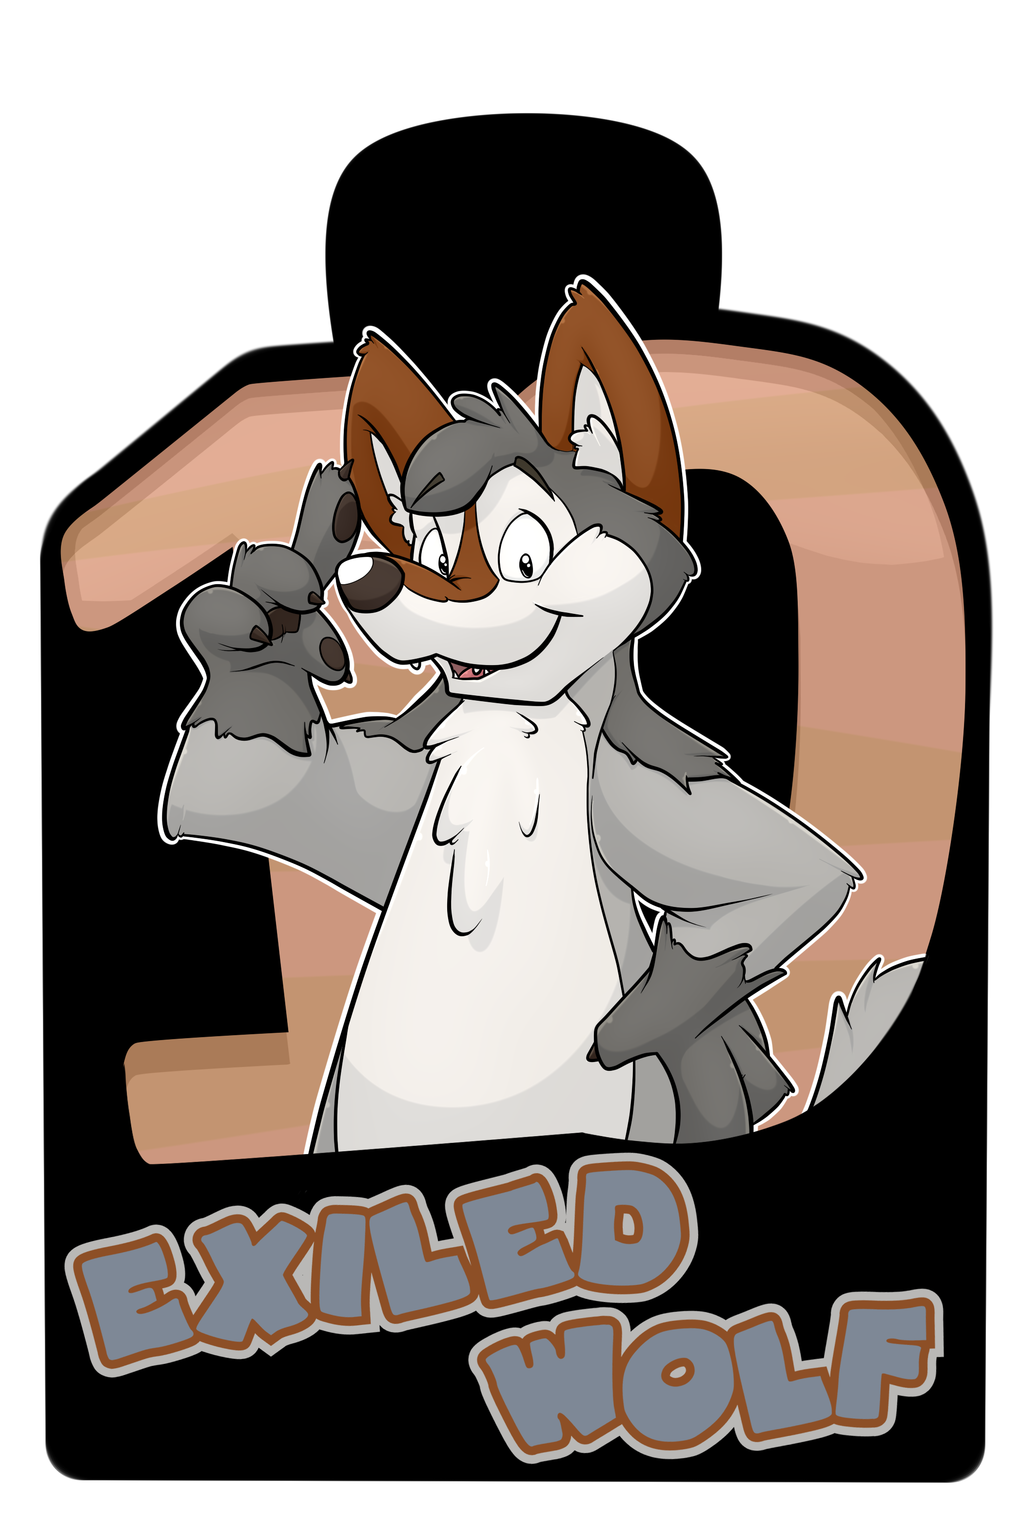 Confuzzled 2017 Badges - Exiled Wolf